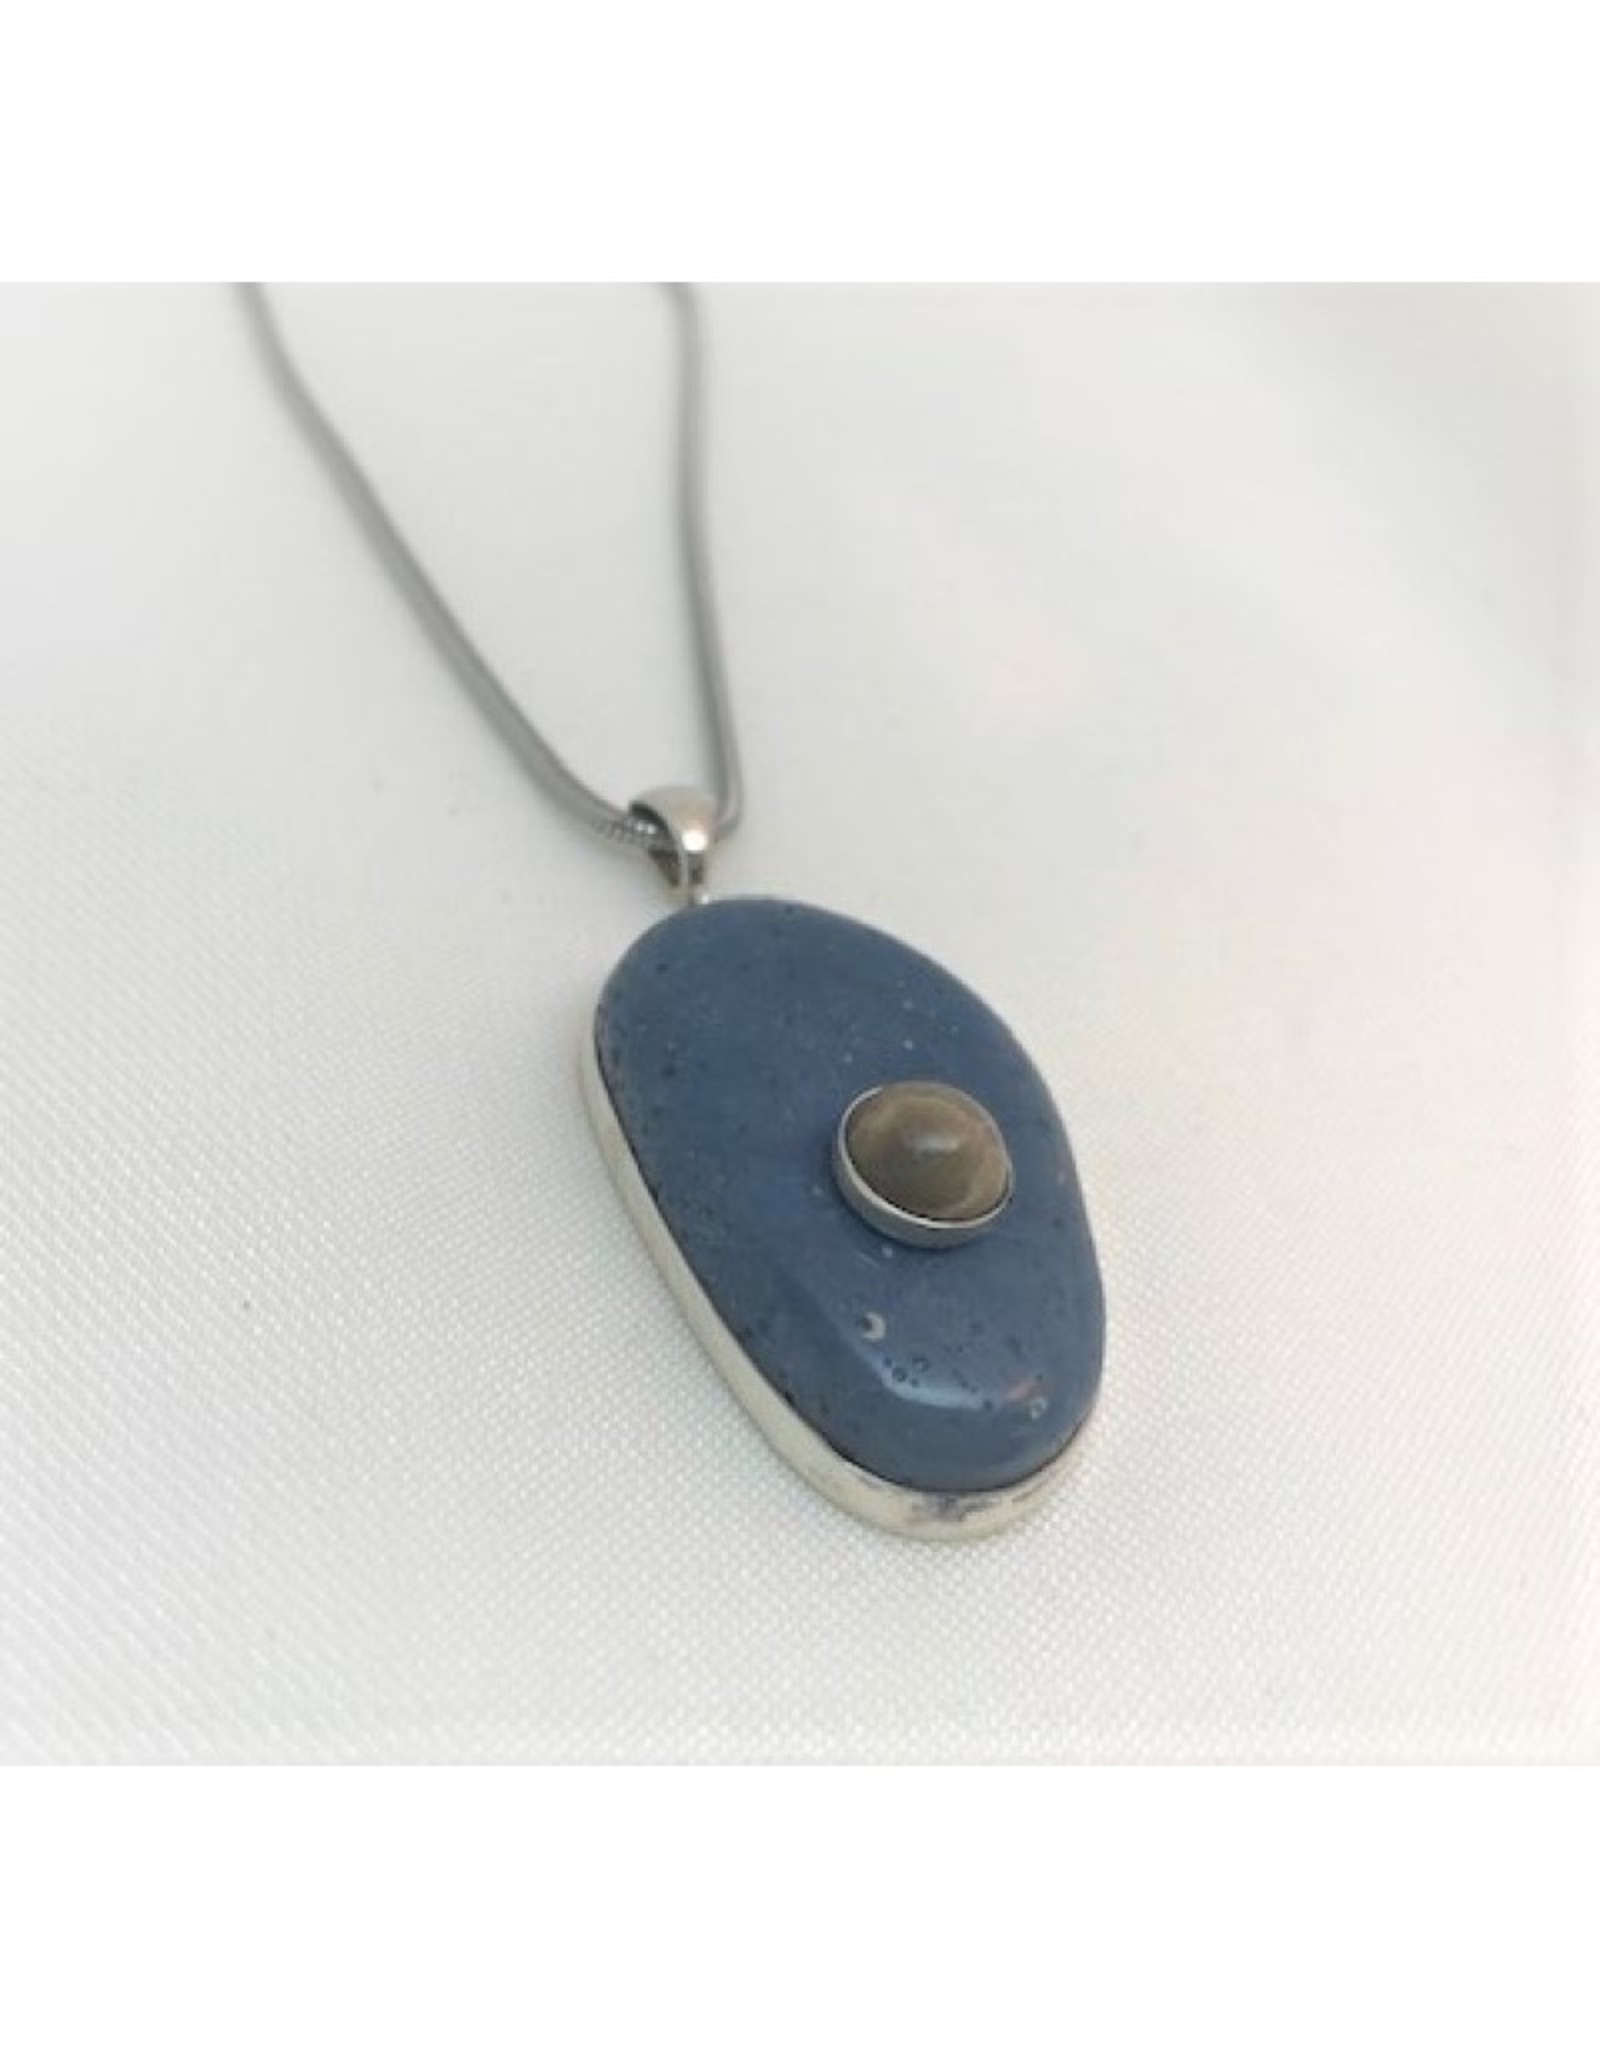 Necklace Pendant - Leland Blue w/ Petoskey Accent